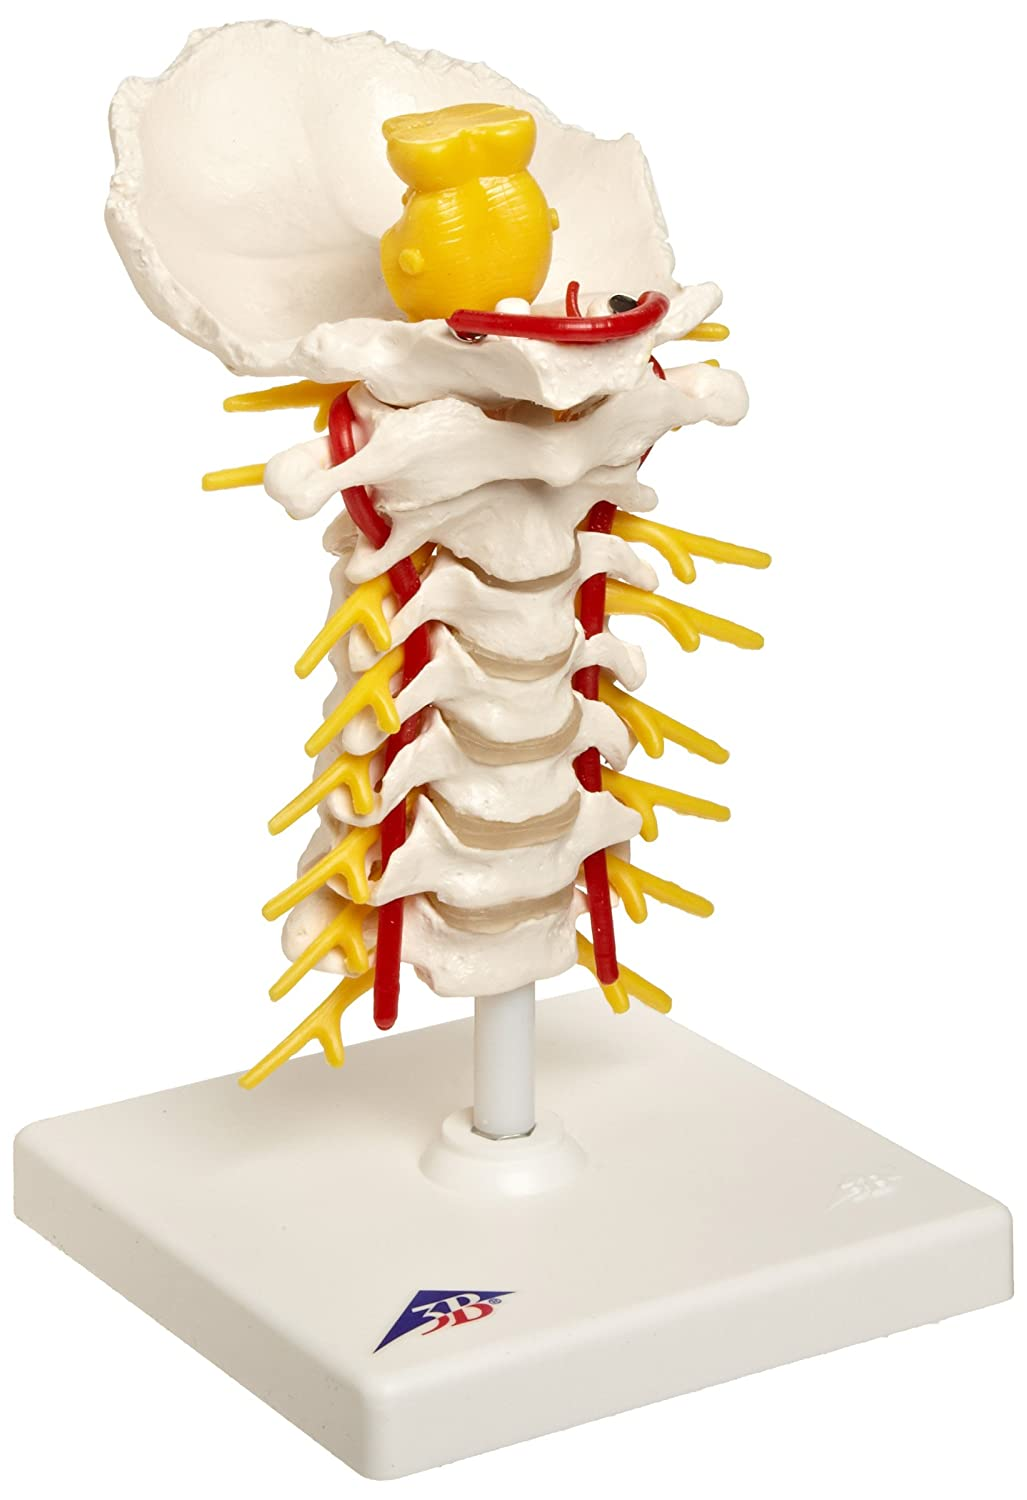 3b Scientific A72 Cervical Spinal Column Model With Stand 75